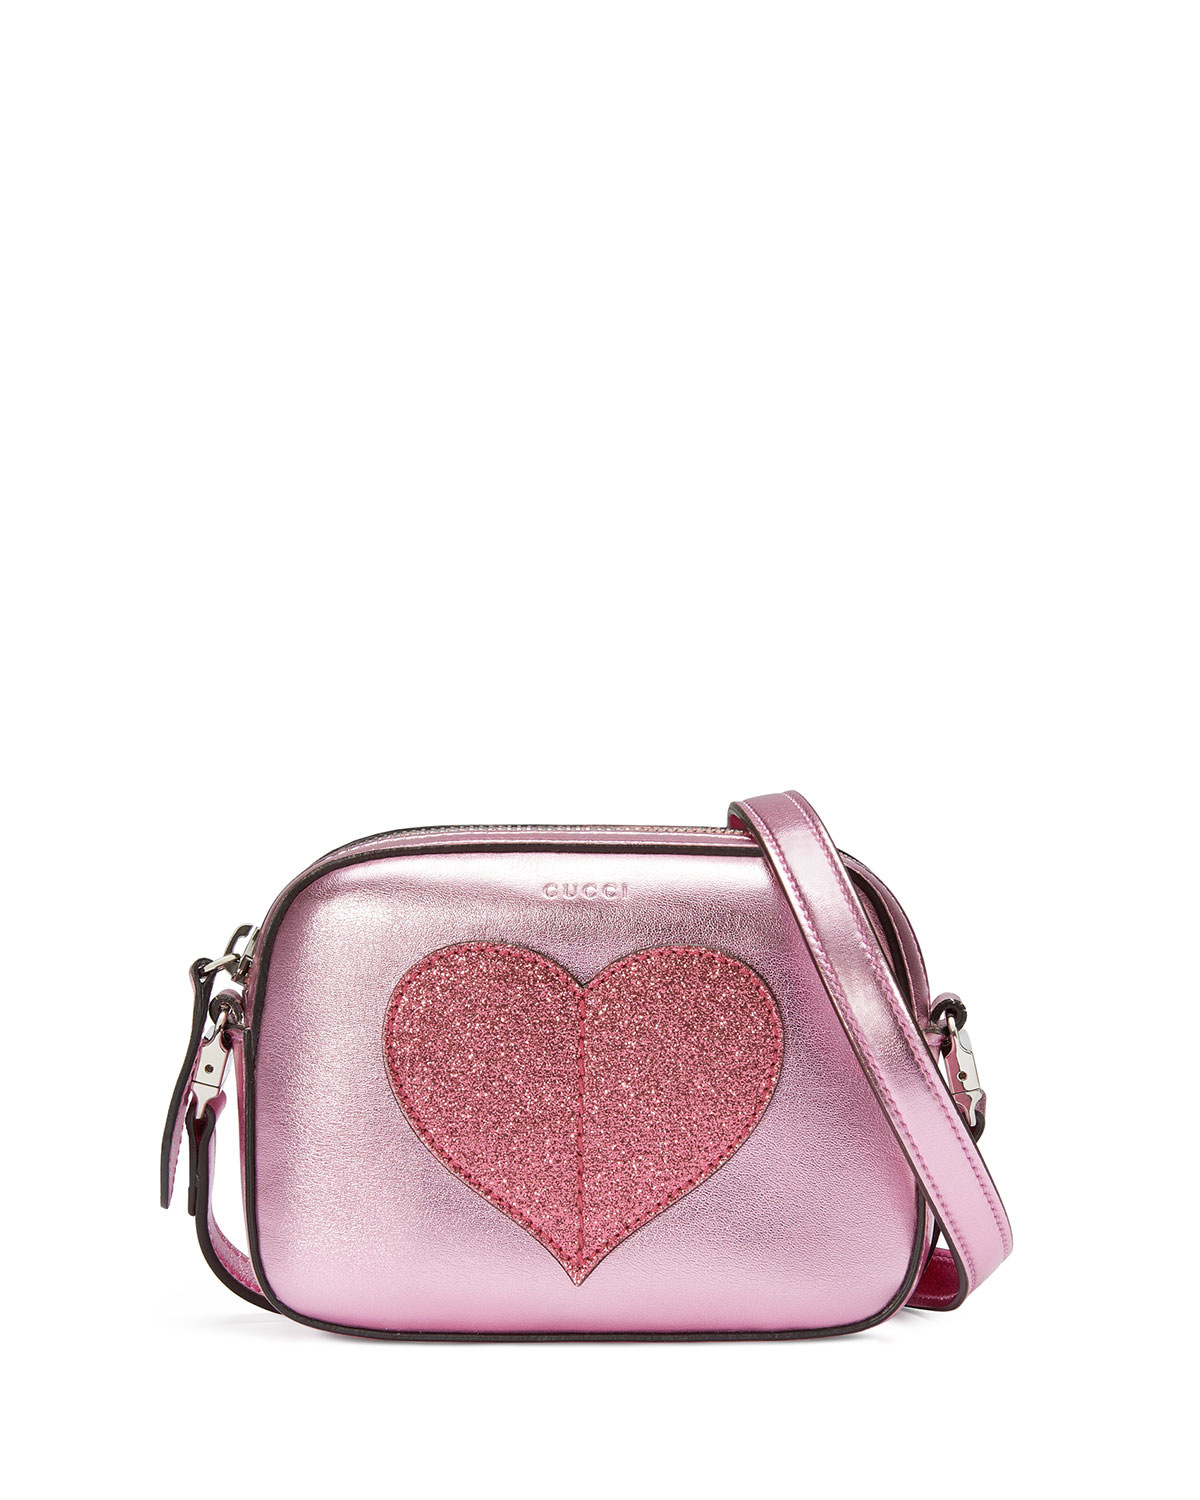 be213763c4ac8a Gucci Girls' Metallic Leather Heart Crossbody Bag, Pink | Neiman Marcus